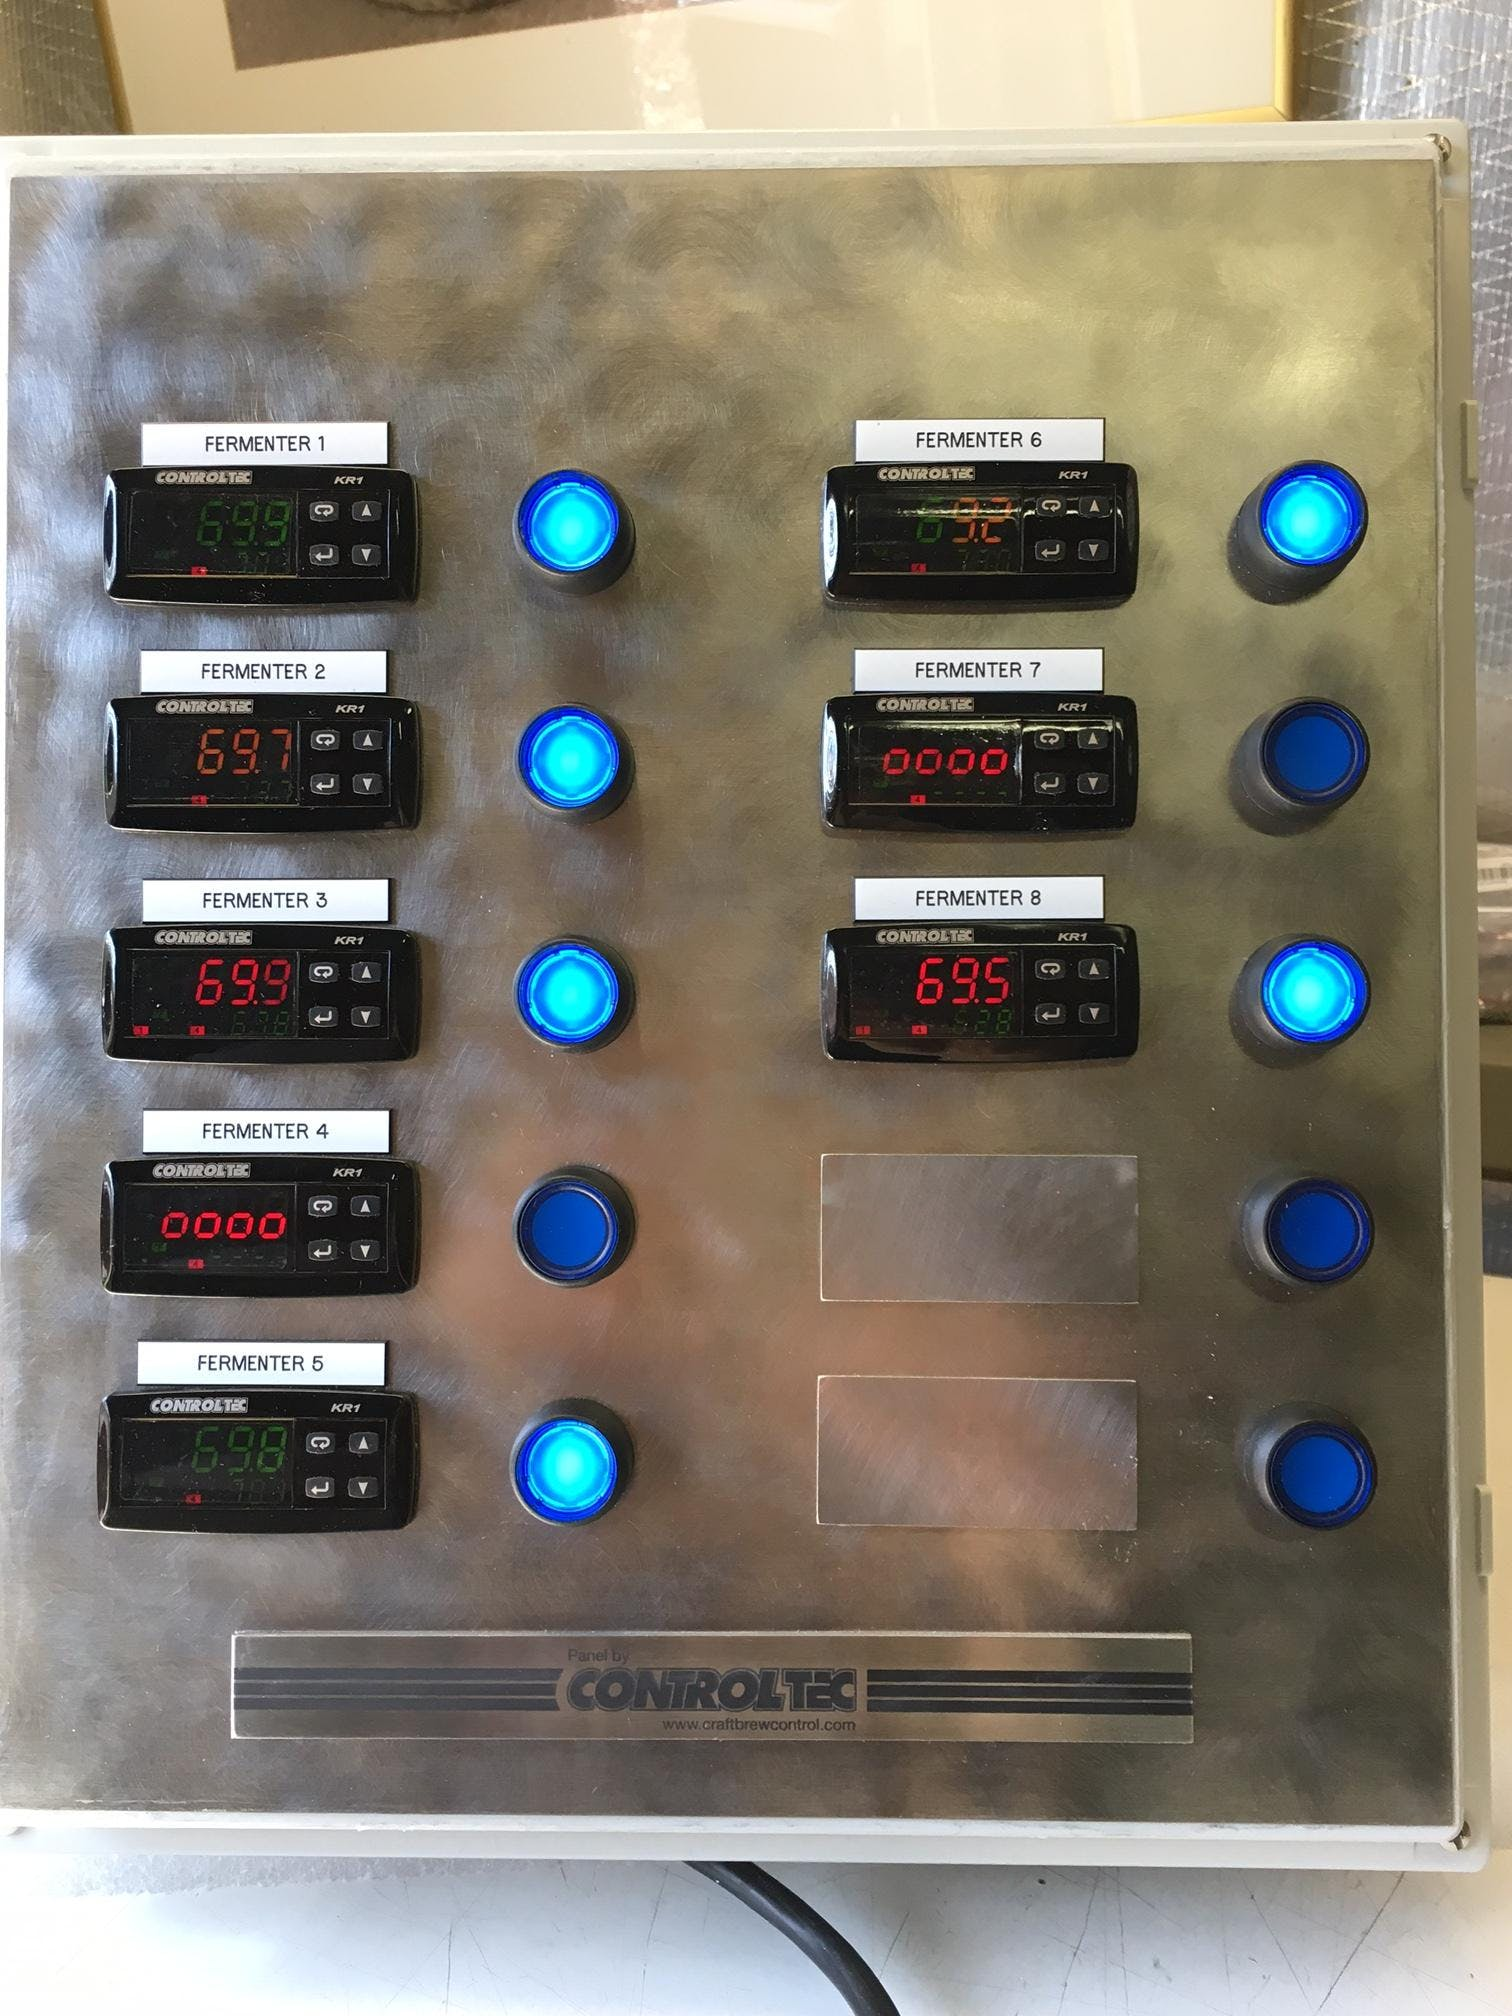 Premium Cellar Panels Control System sold by ControlTec, Inc